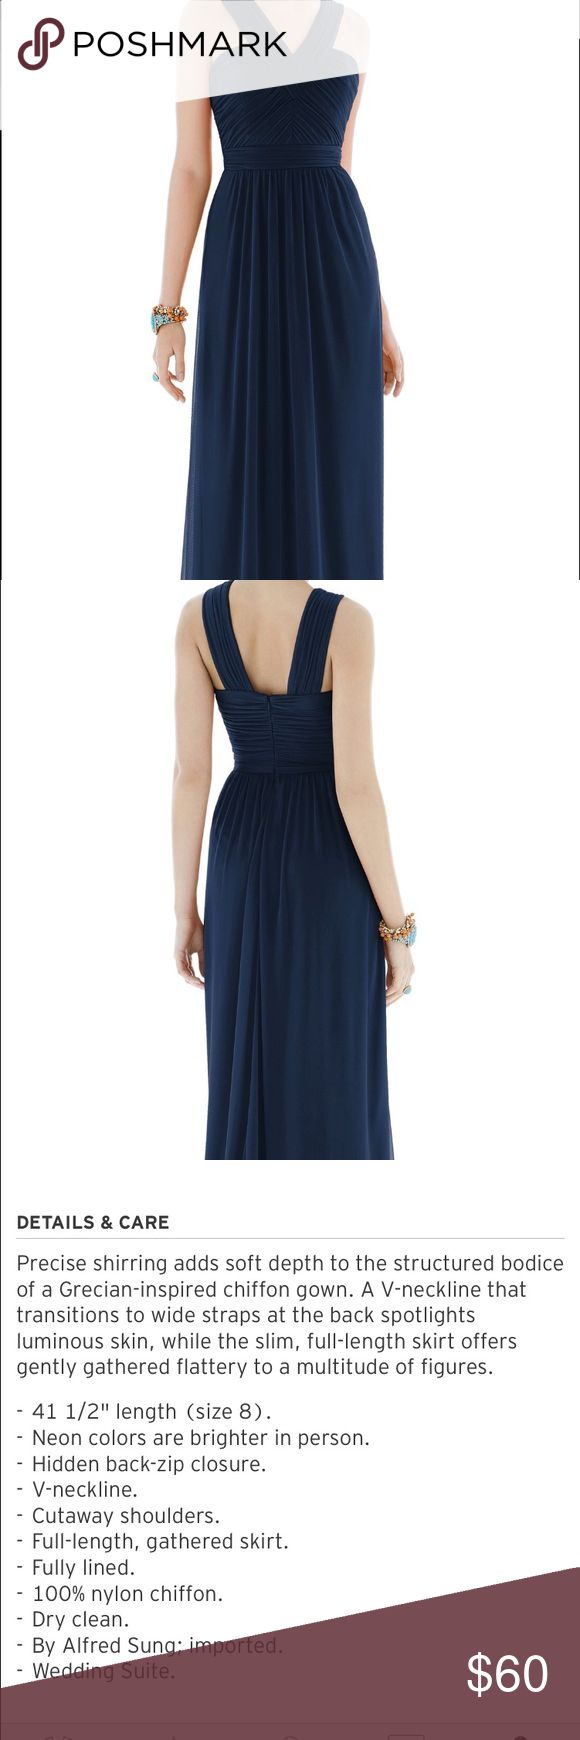 Floor length navy Alfred Sung dress - worn once Navy chiffon dress that I used as a bridesmaid dress... very flattering! alfred sung Dresses Wedding